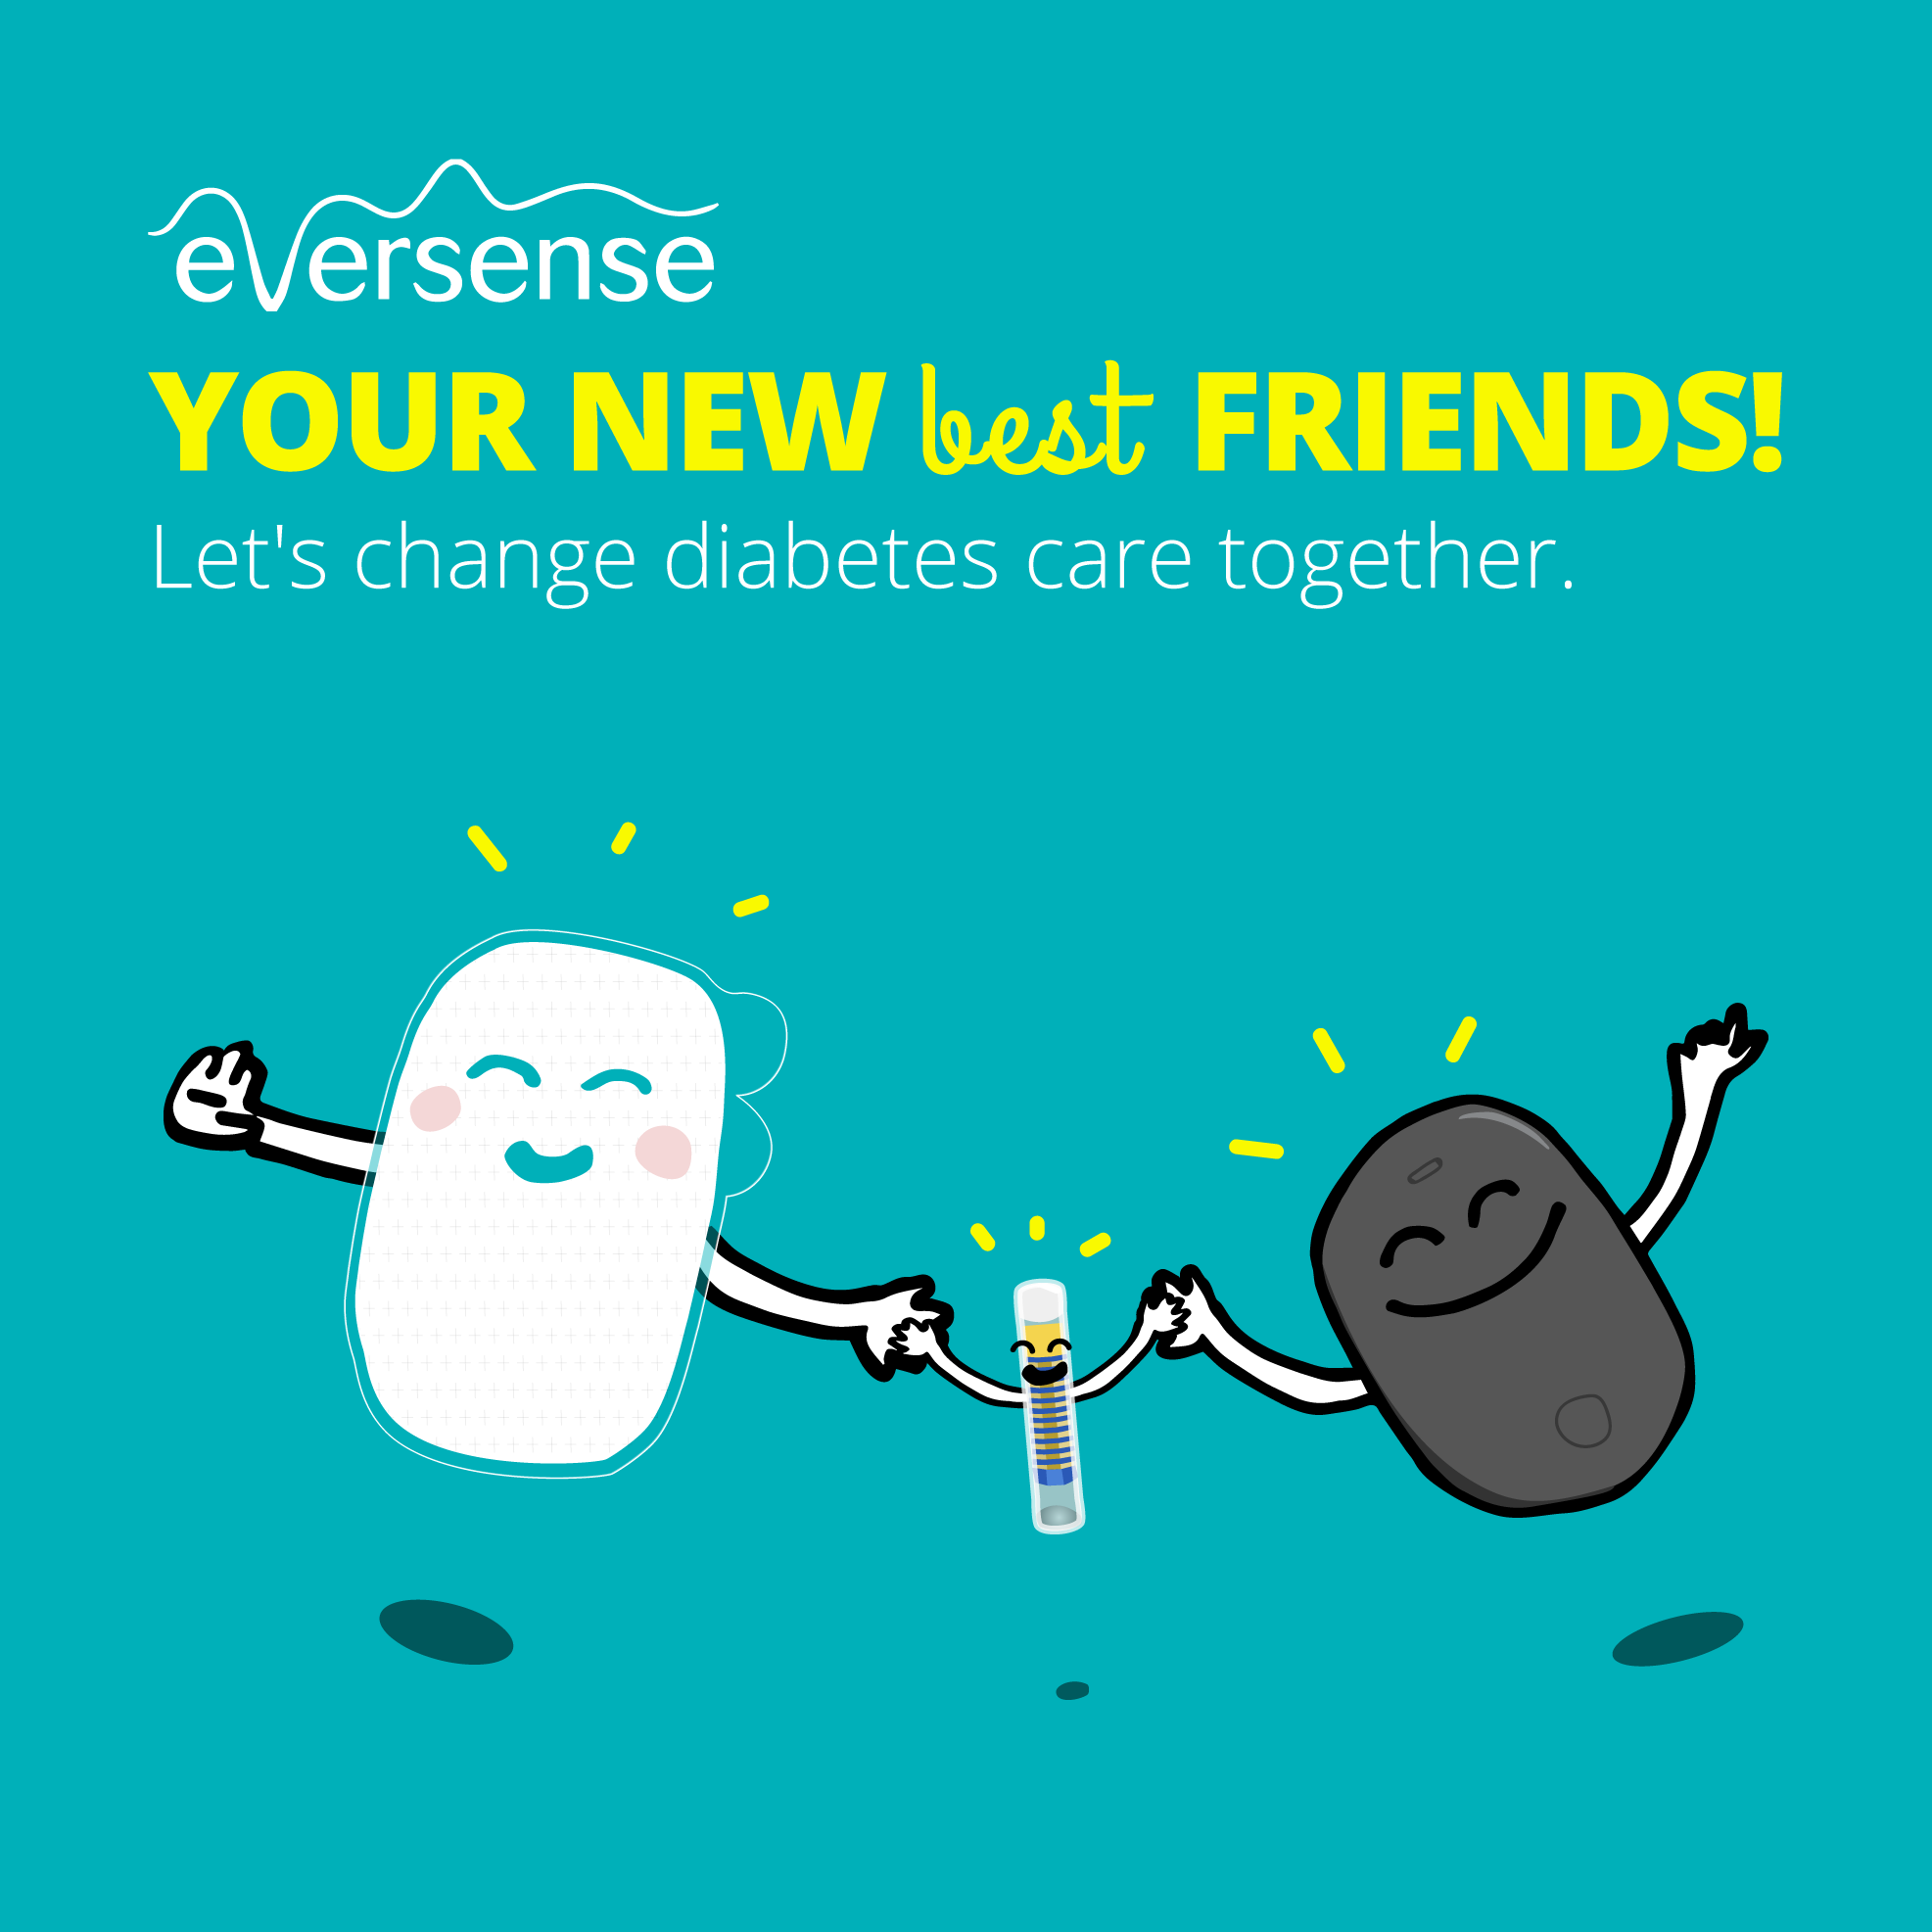 Eversense CGM Friendshipday Diabetes type 1